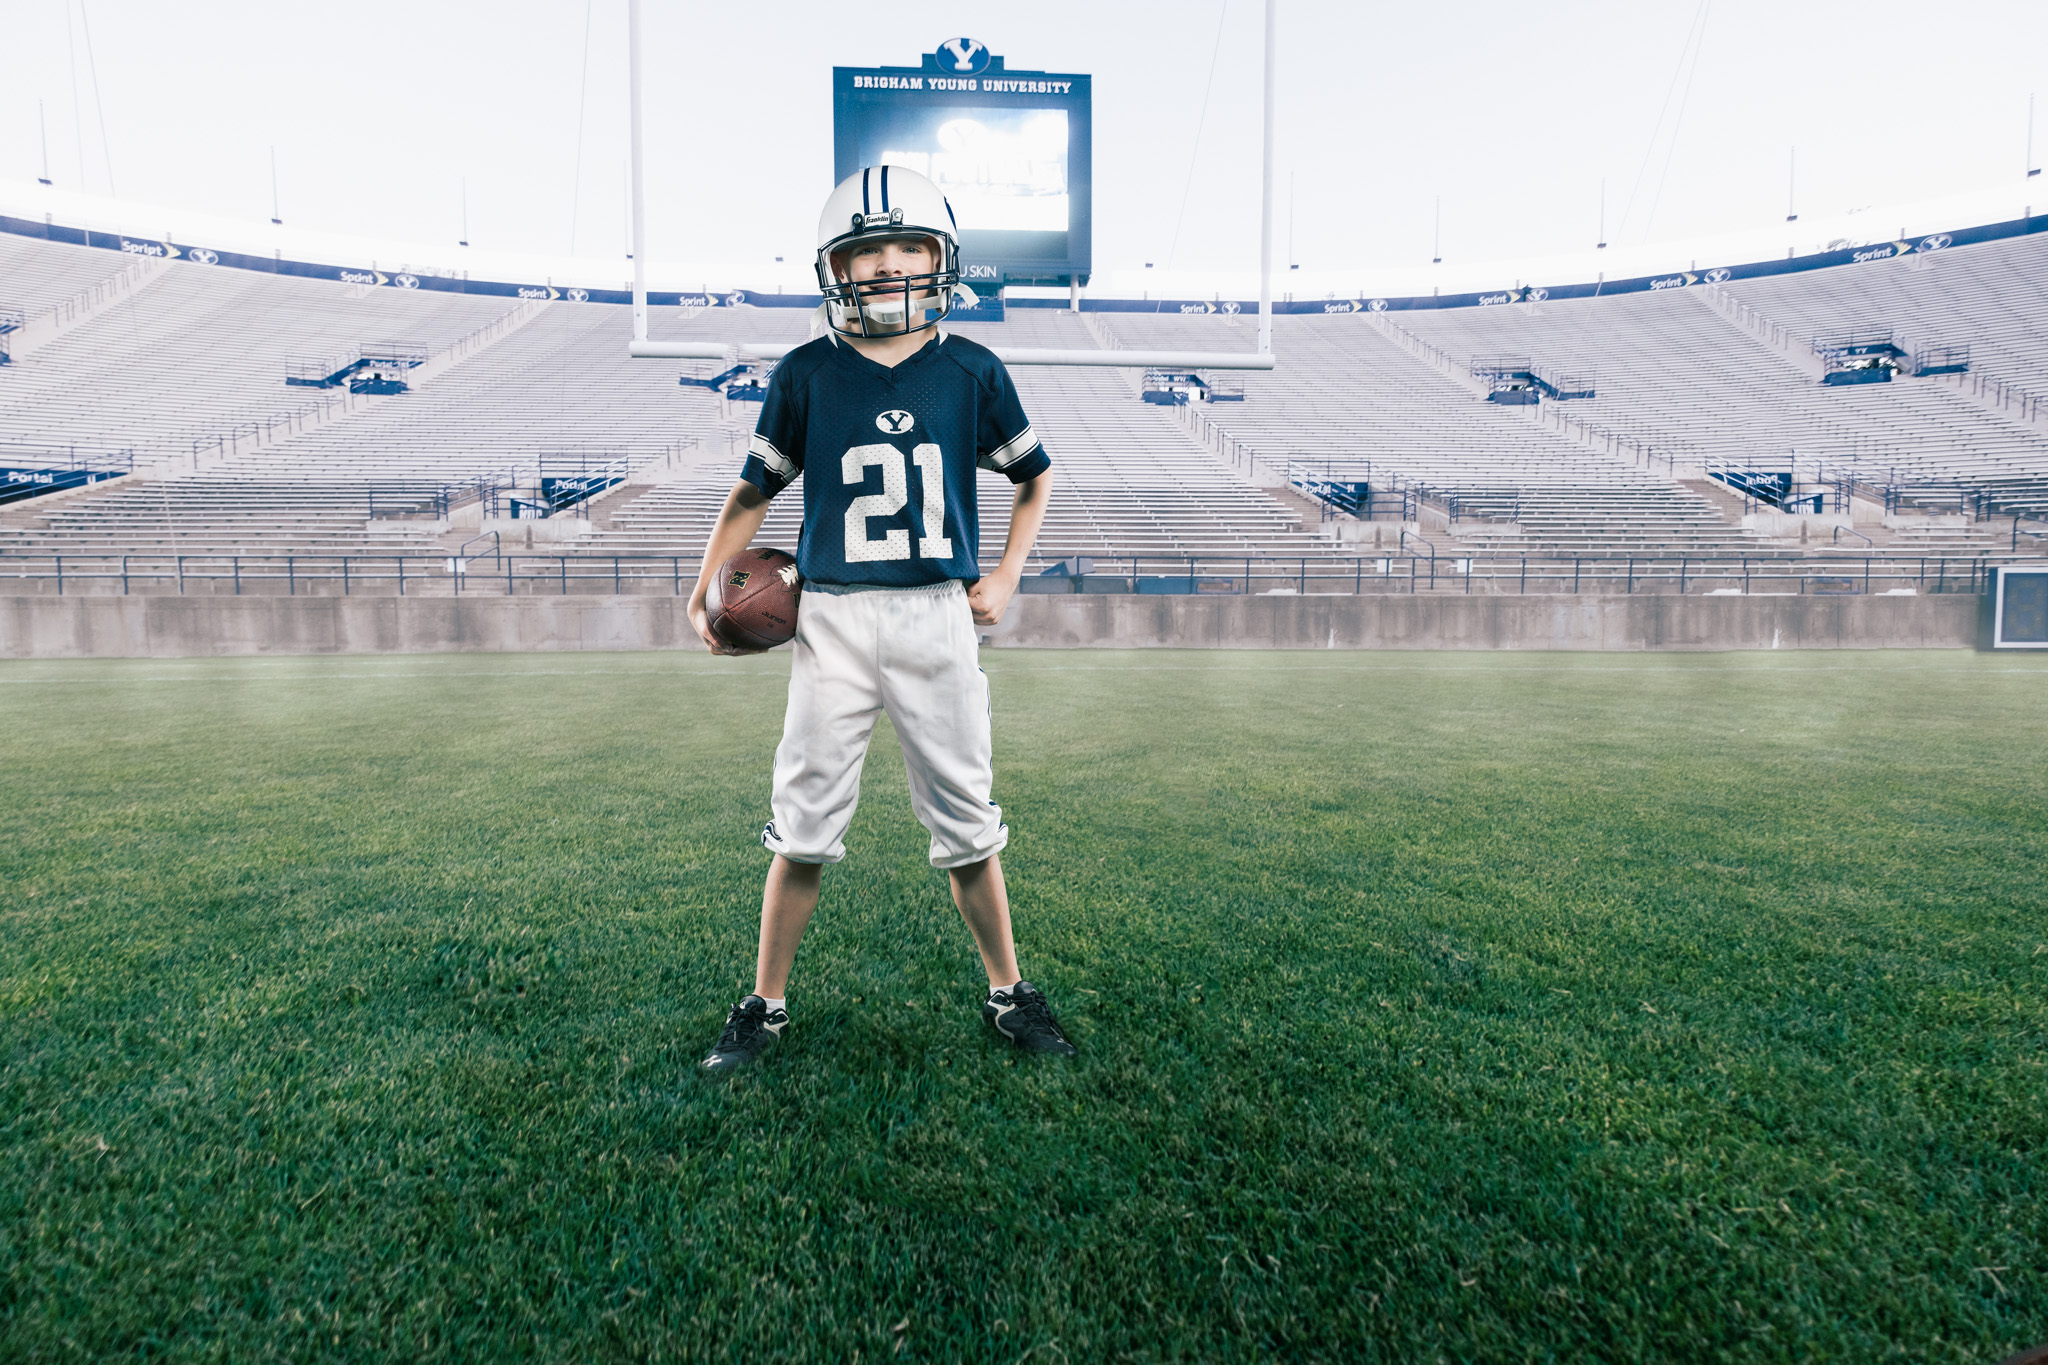 Henry takes the football field with Photoshop